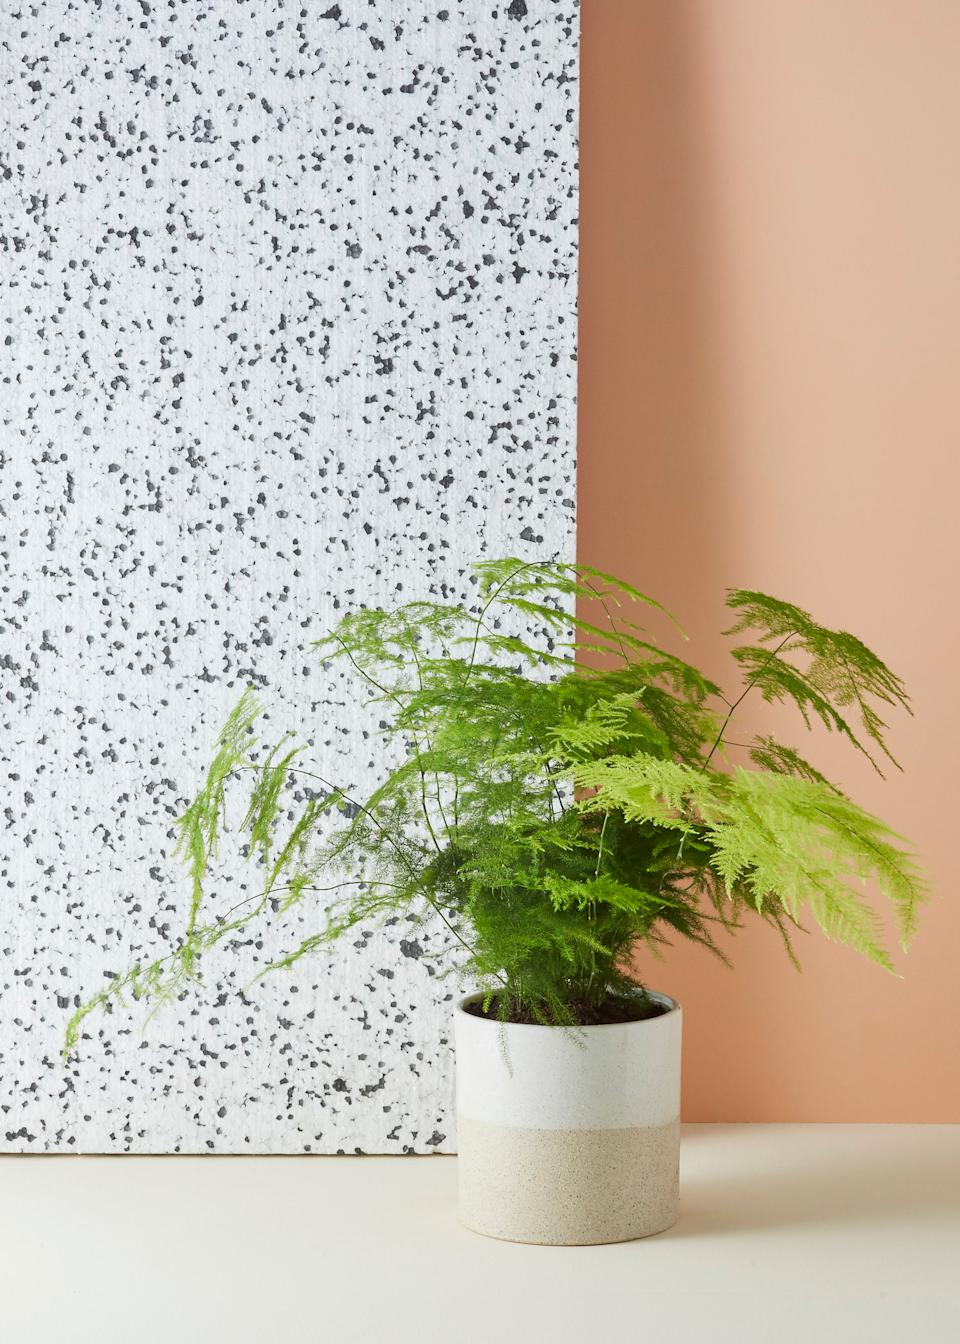 "<strong><h3>Geo-Fleur</h3></strong><br>We've been eyeing this London-based indoor plant brand's collection of chic perennials — ranging from <a href=""https://www.trouva.com/boutique/geo-fleur-in-e152er/asparagus-fern-house-plant-7621"" rel=""nofollow noopener"" target=""_blank"" data-ylk=""slk:asparagus ferns"" class=""link rapid-noclick-resp"">asparagus ferns</a> to rare ""<a href=""https://www.trouva.com/boutique/geo-fleur-in-e152er/monstera-obliqua-very-rare-house-plant"" rel=""nofollow noopener"" target=""_blank"" data-ylk=""slk:Swiss cheese plants"" class=""link rapid-noclick-resp"">Swiss cheese plants</a>"" — for some time now. Fortunately, we've found a workaround to get these plants stateside: The brand is stocked at <a href=""https://www.trouva.com/"" rel=""nofollow noopener"" target=""_blank"" data-ylk=""slk:Trouva"" class=""link rapid-noclick-resp"">Trouva</a>, an online boutique that ships to the U.S. for $16.76.<br><br><em>Visit <a href=""https://www.trouva.com/boutique/geo-fleur-in-e152er"" rel=""nofollow noopener"" target=""_blank"" data-ylk=""slk:Geo-Fleur"" class=""link rapid-noclick-resp"">Geo-Fleur</a>.</em><span class=""copyright"">Photo: Courtesy of Geo Fleur.</span>"